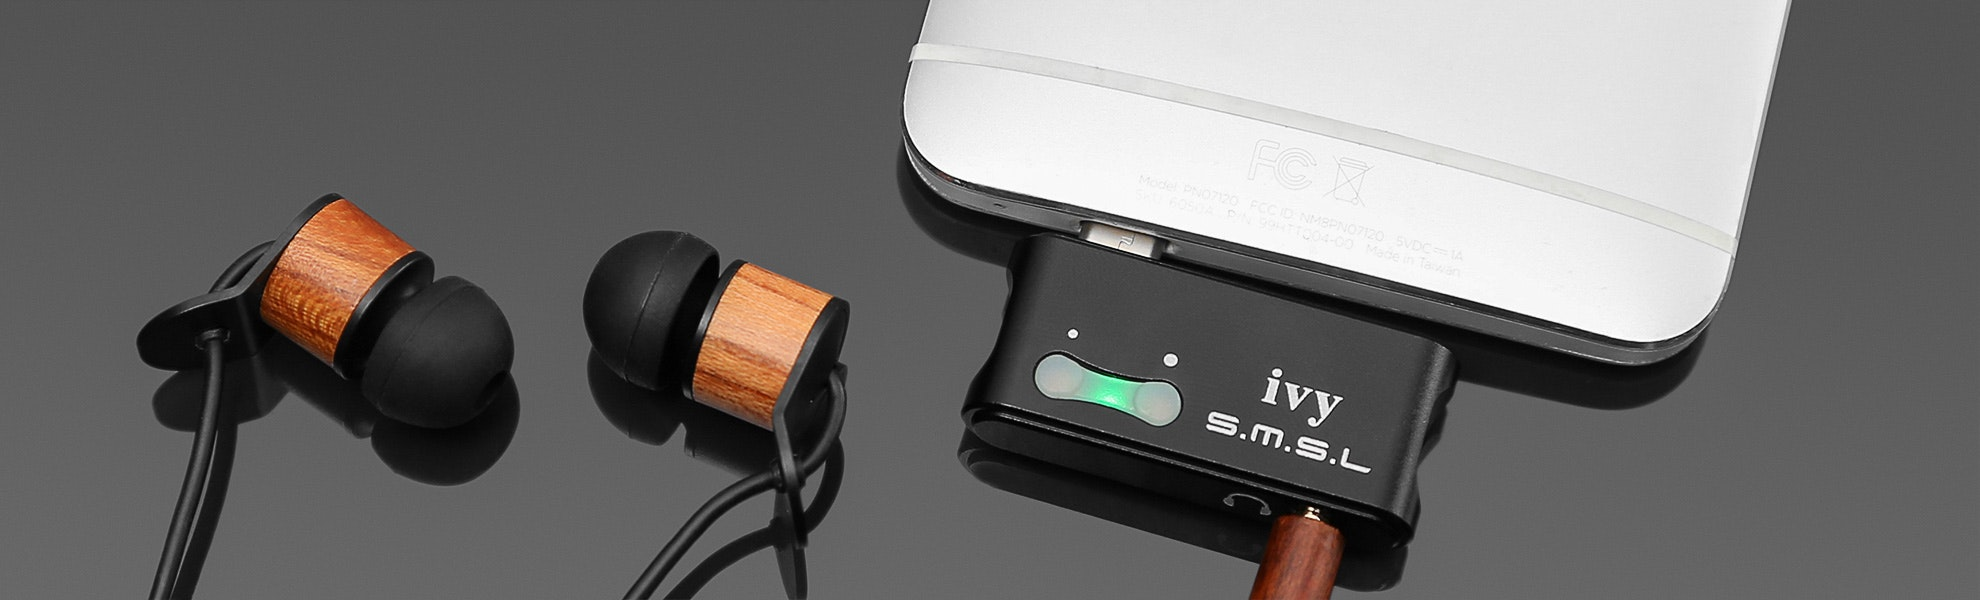 SMSL Ivy Micro-USB DAC/Amp for Android